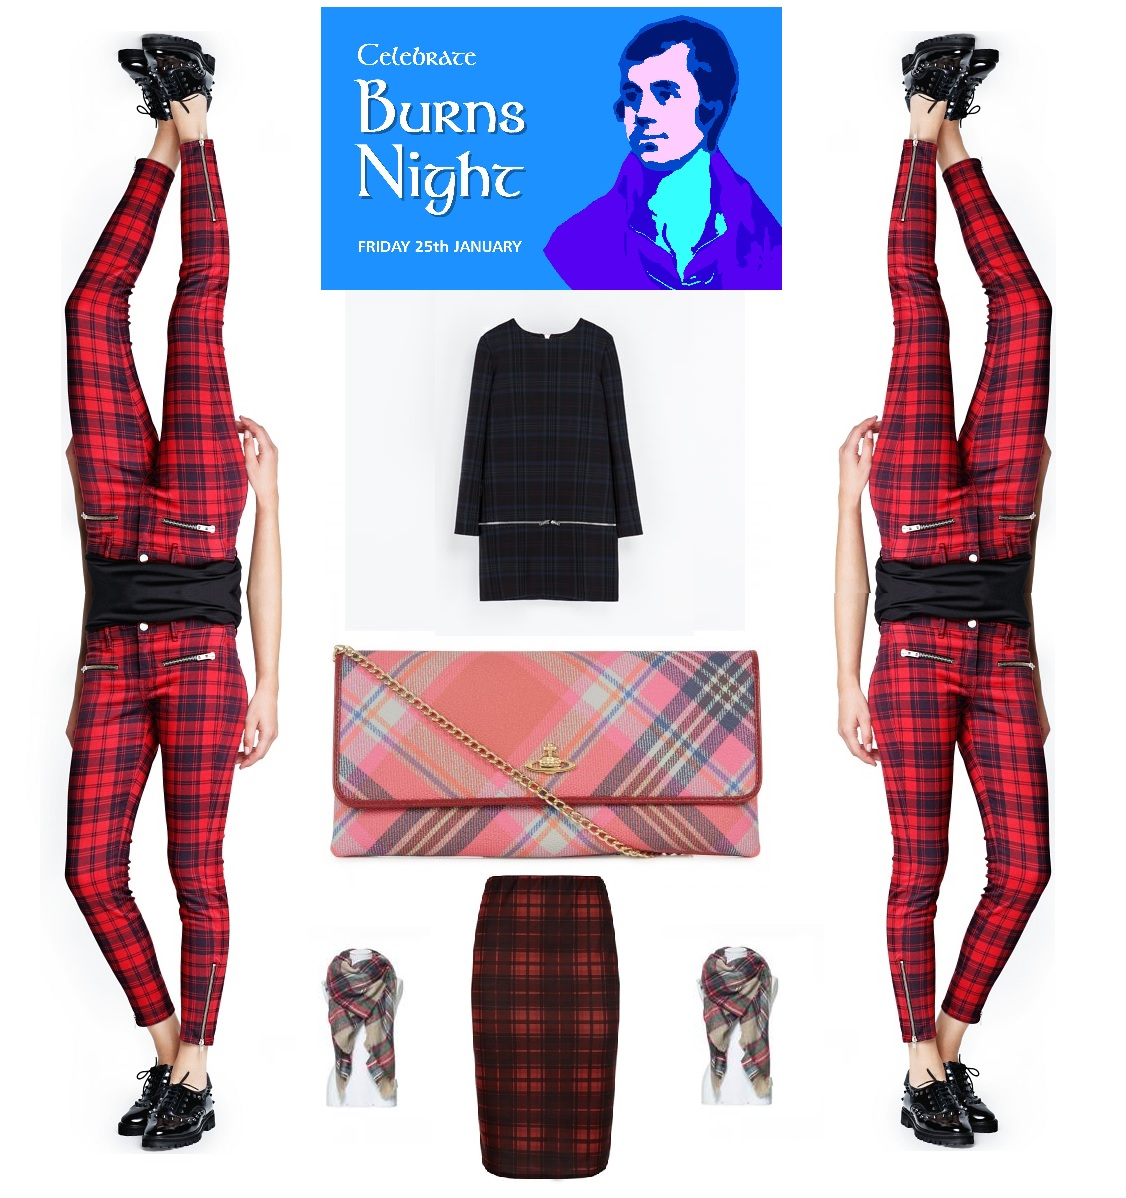 The City Girlu2019s Guide To Burns Night | The British Fashionista